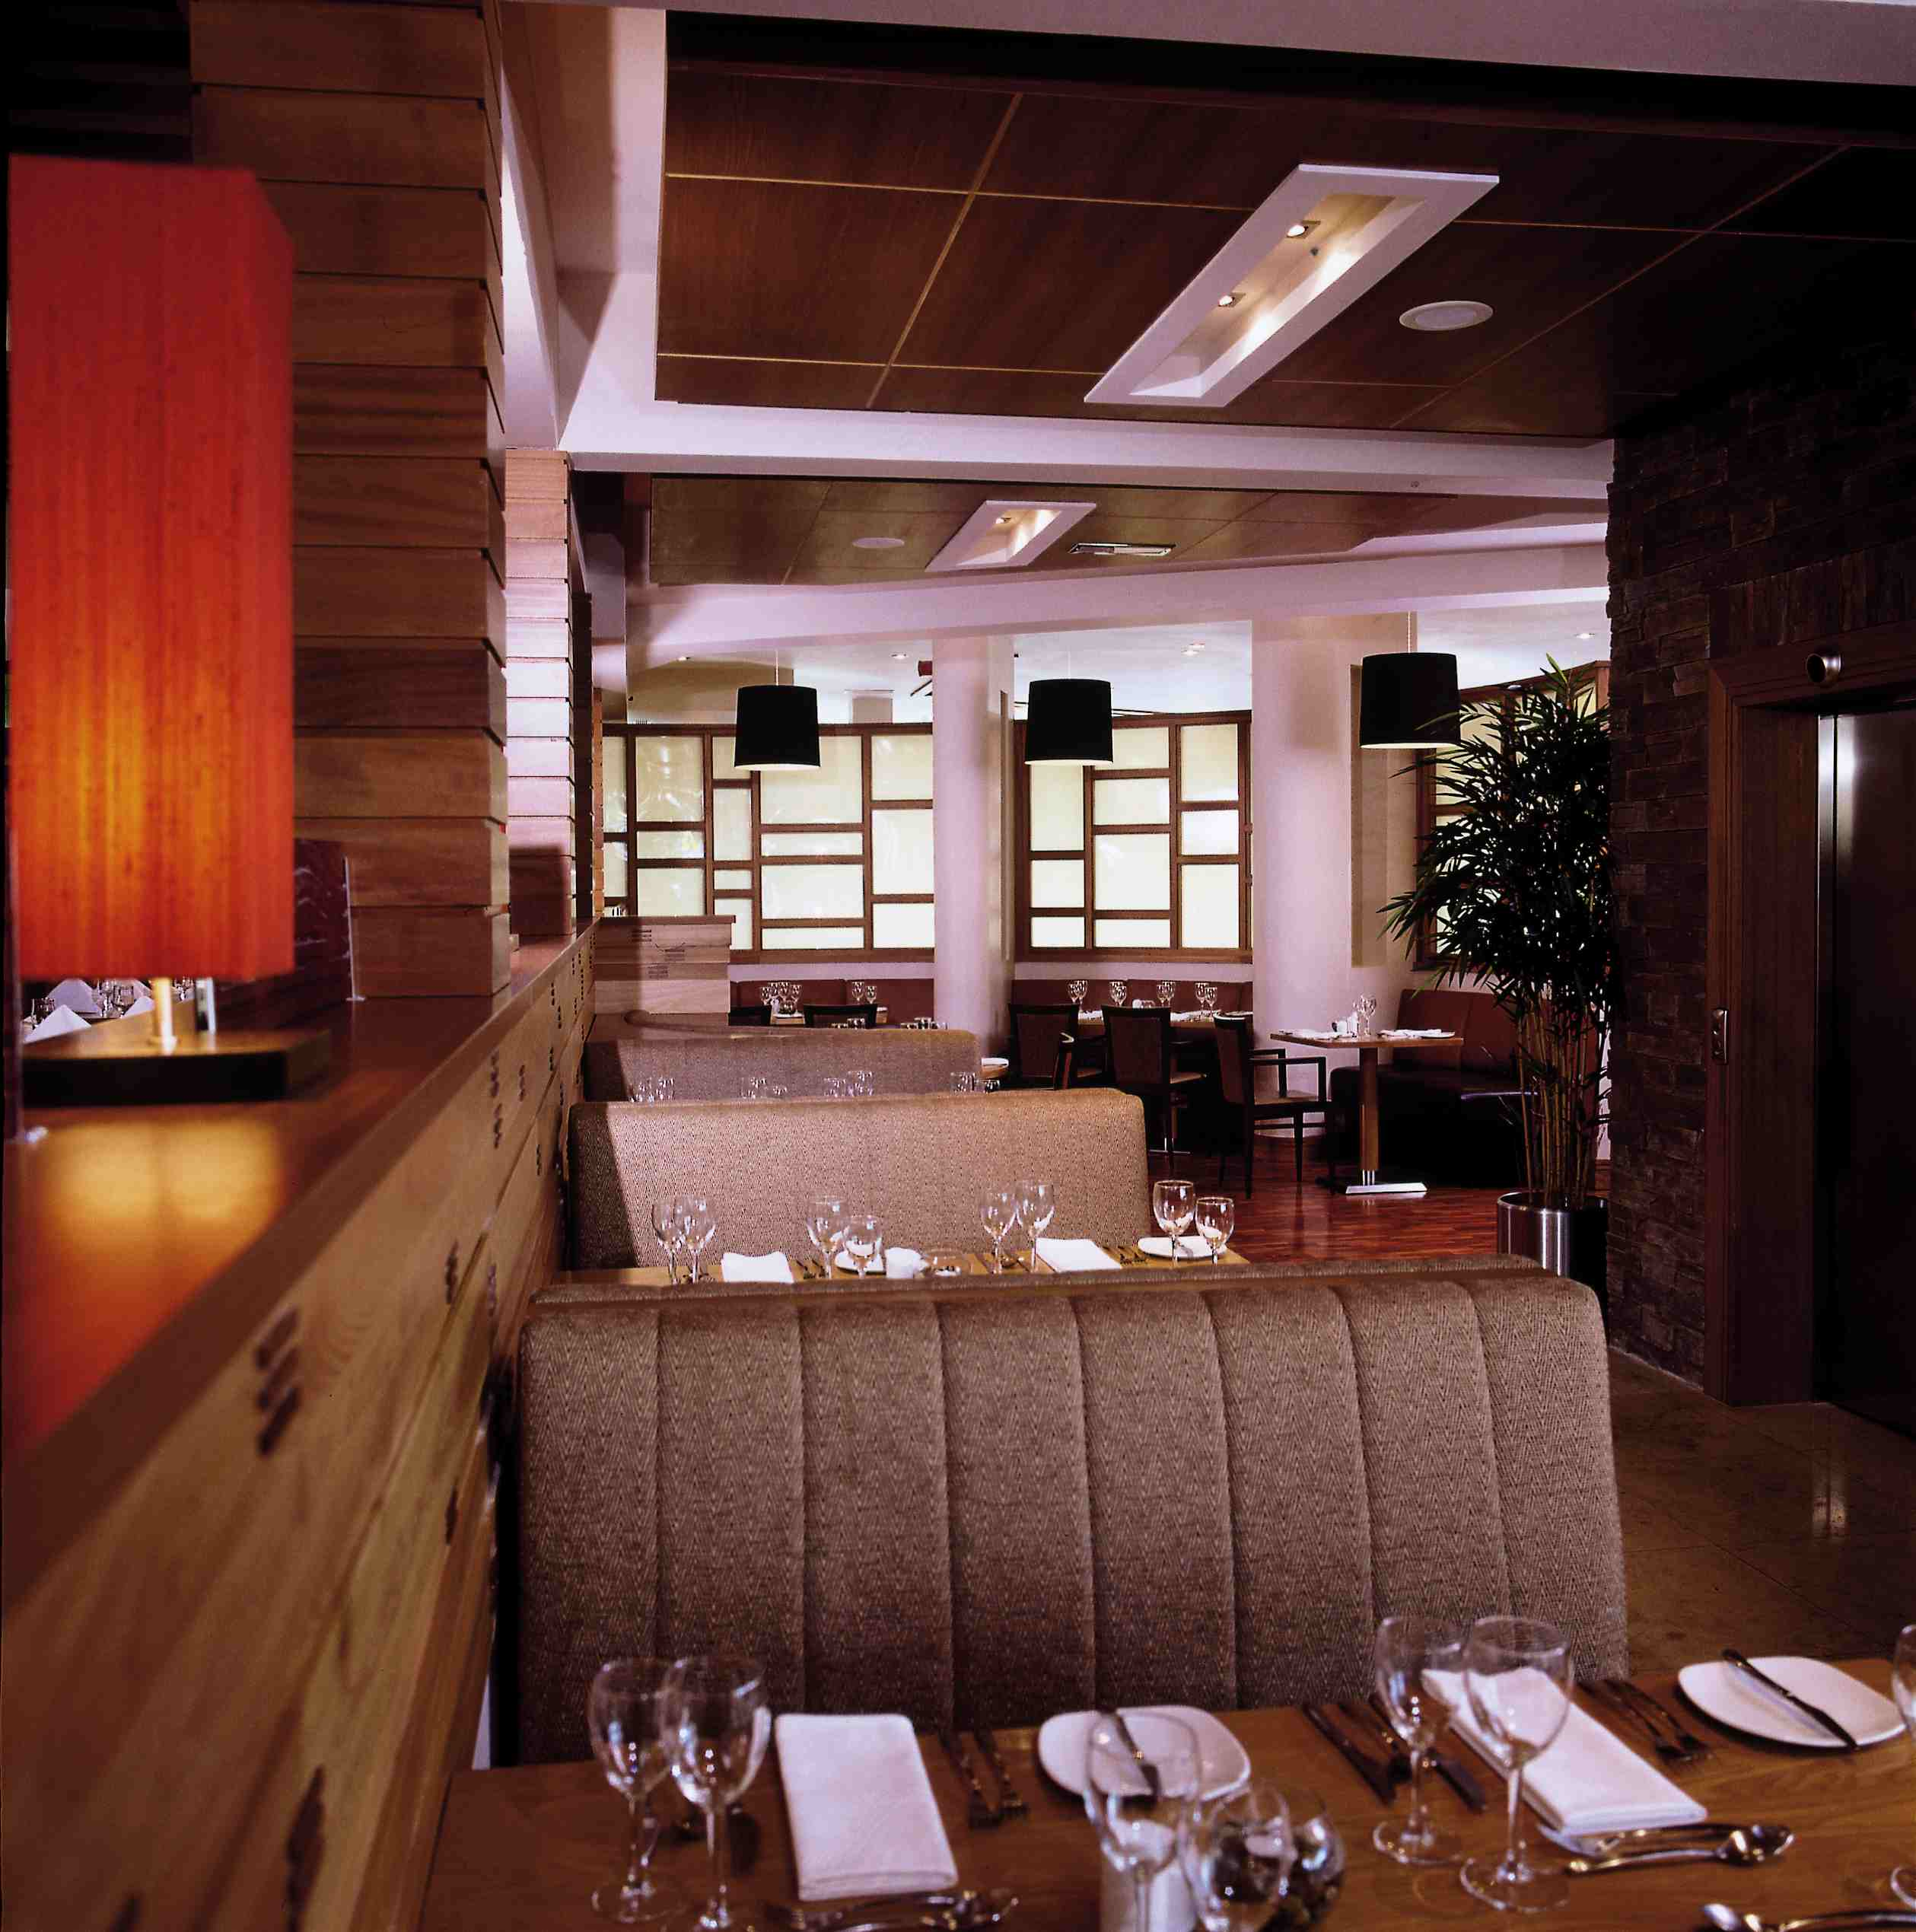 Cork deals restaurants